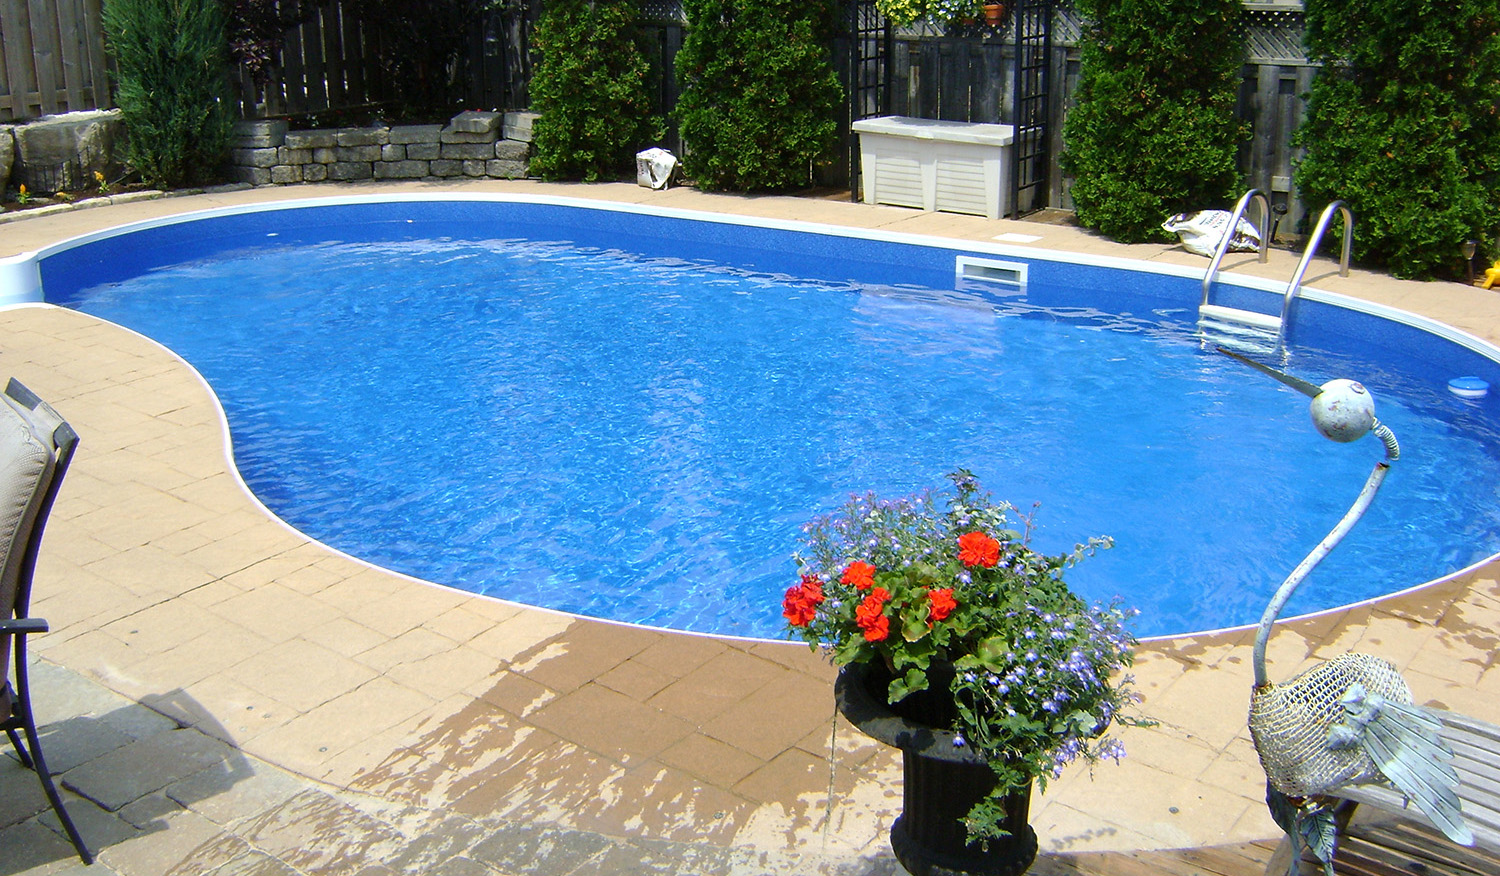 Pool services fisher pools - Swimming pools in hamilton ontario ...